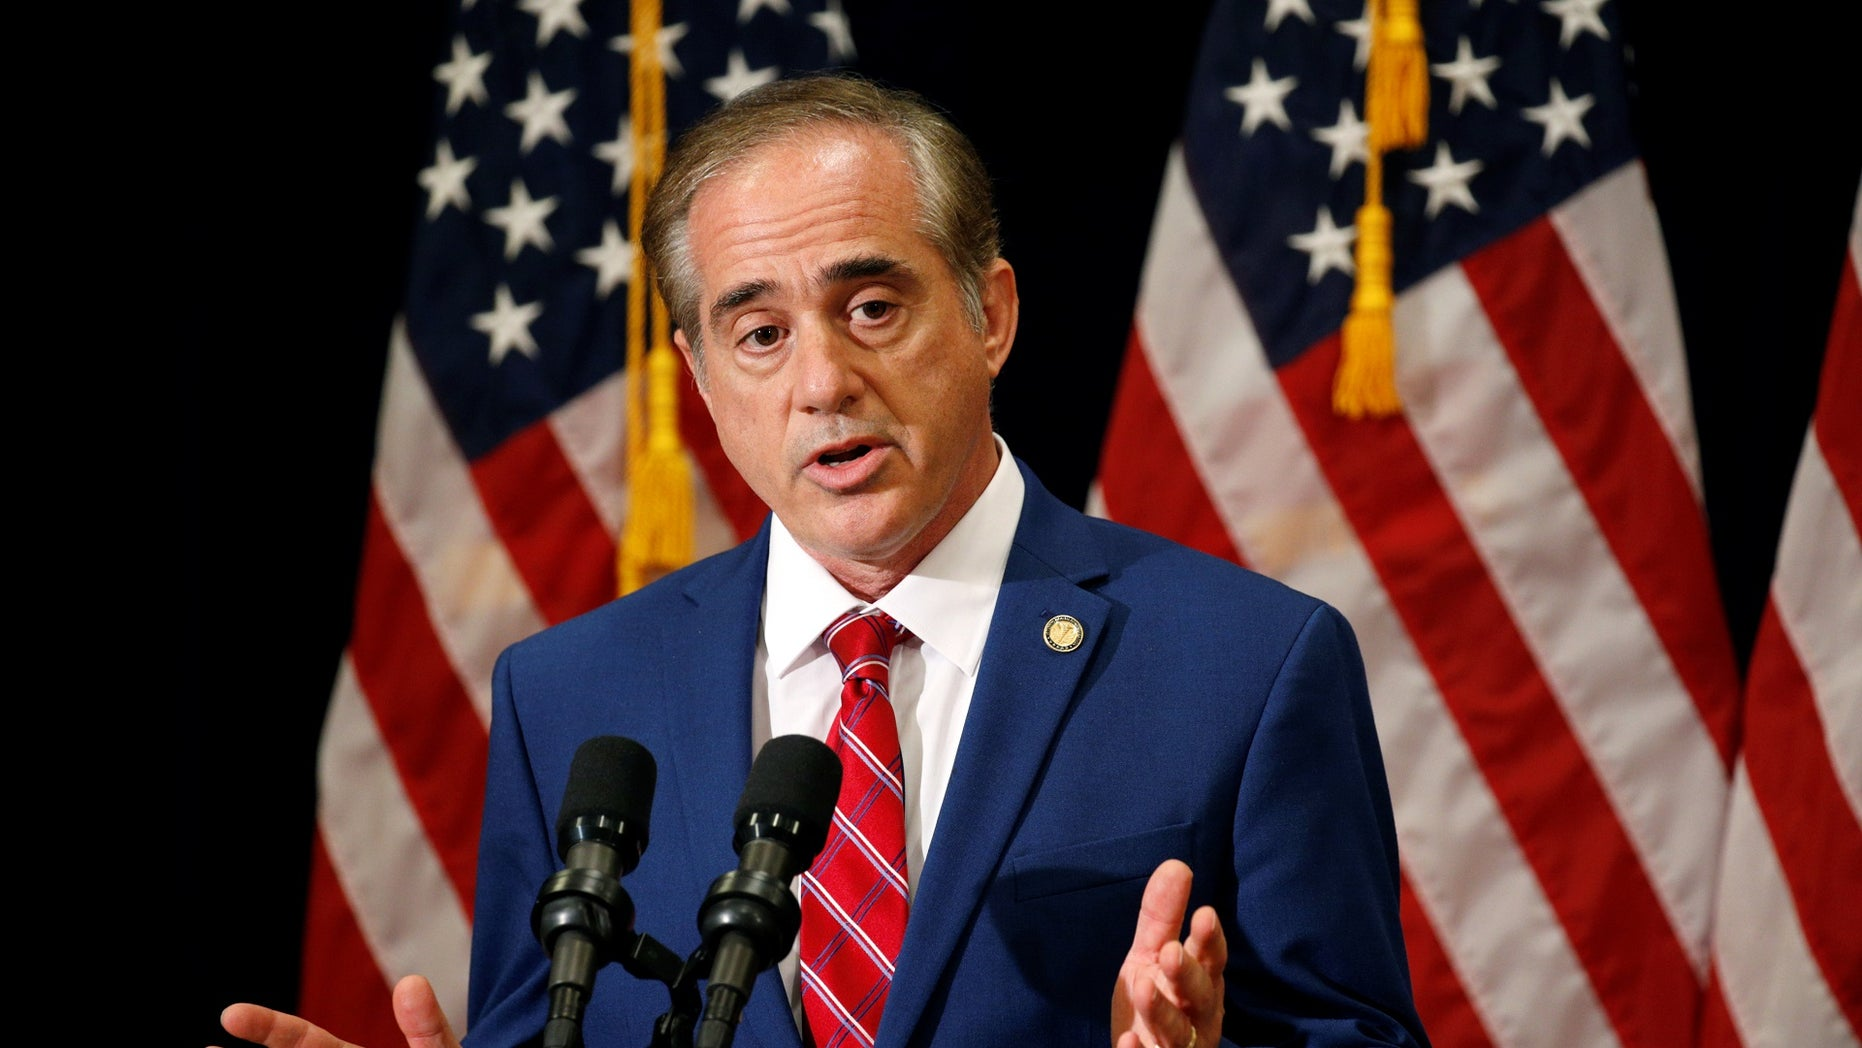 Who is David Shulkin? 3 things to know about Trump's former